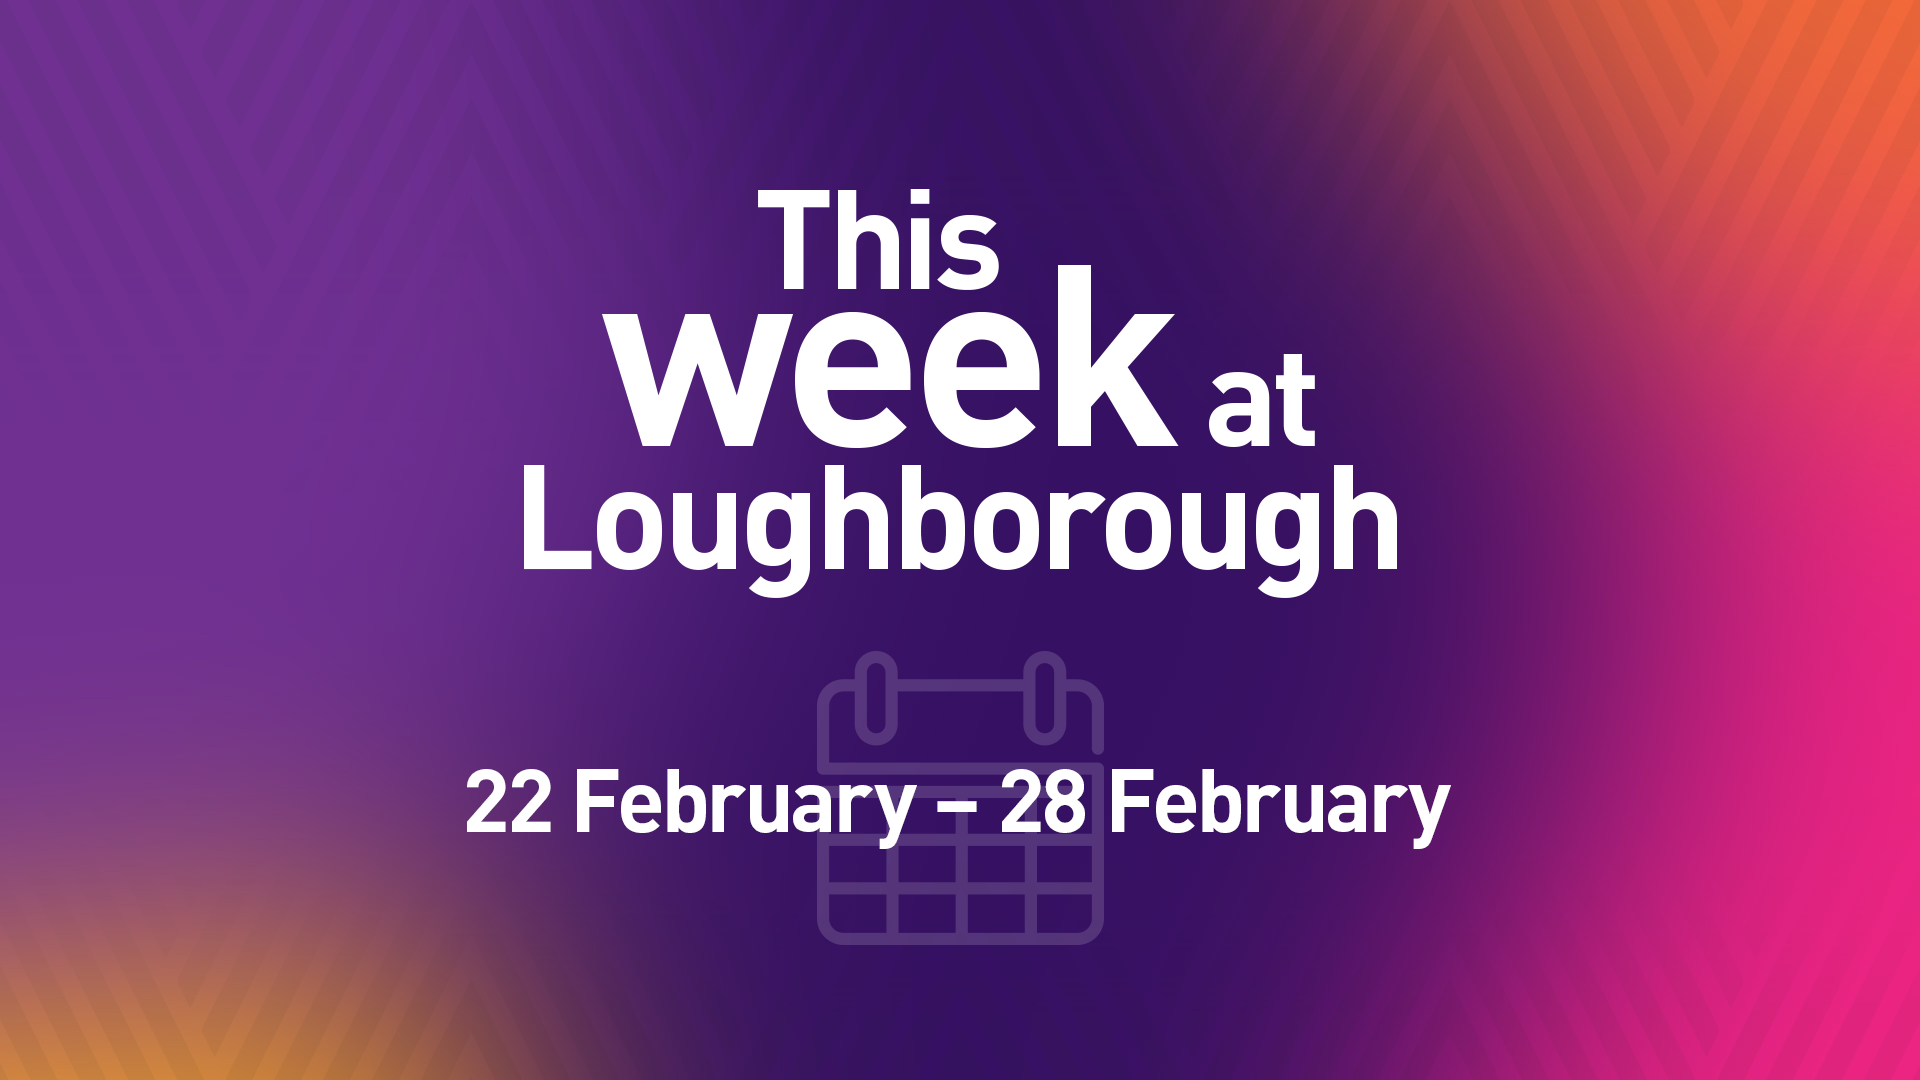 This Week at Loughborough | 22 February